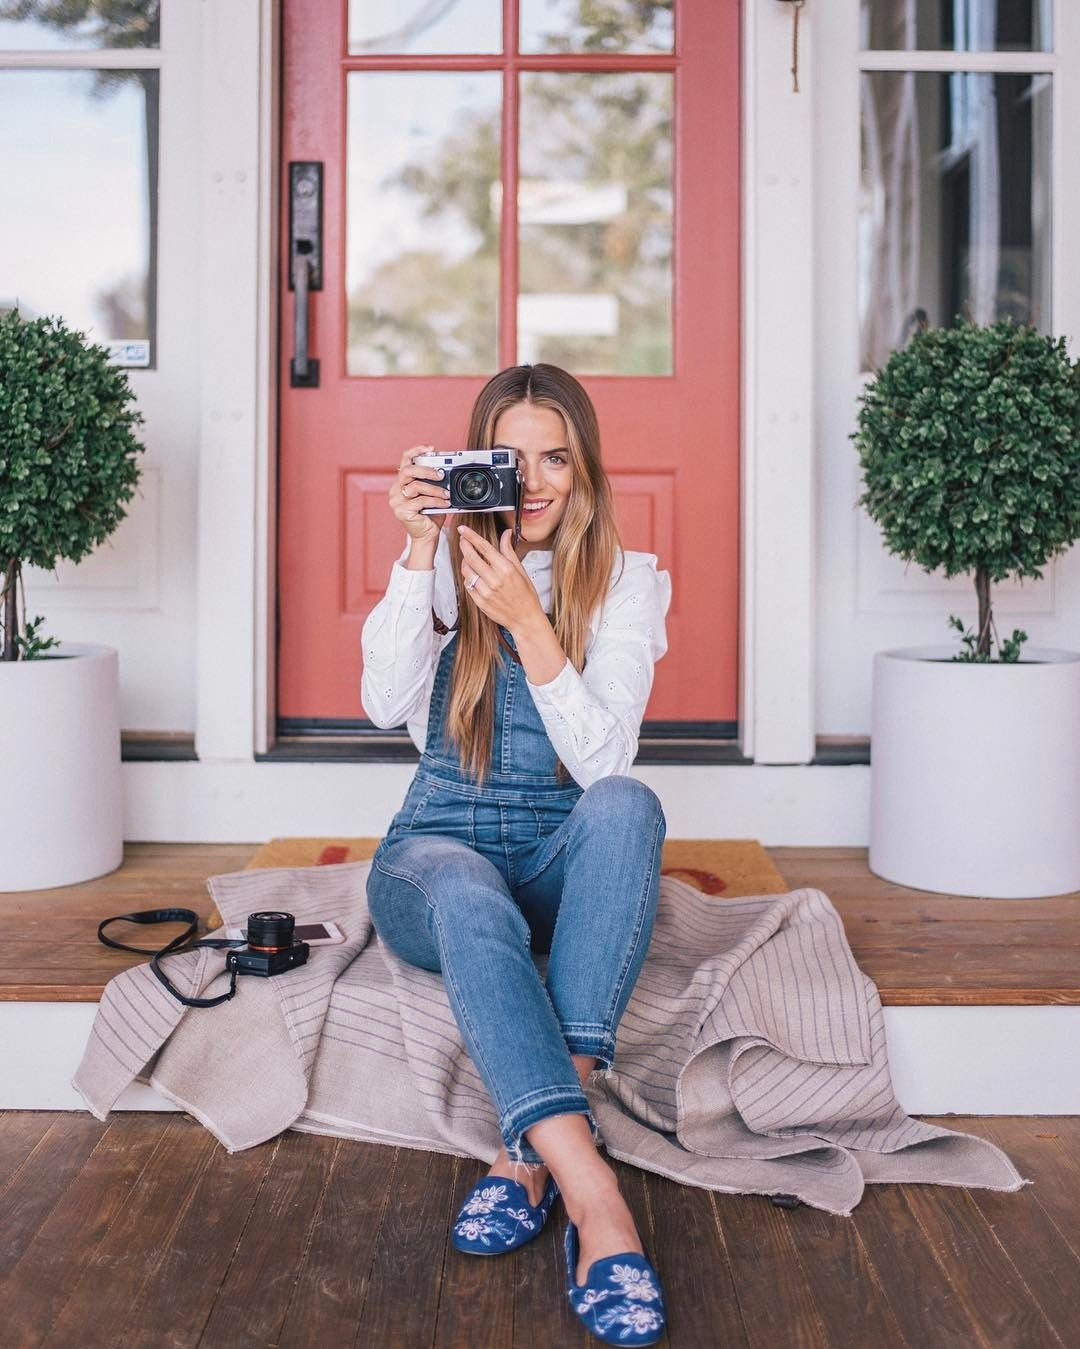 Answering the top three most-asked photography questions we get over on galmeetsglam.com today (i.e. what cameras we use for what how we edit & more) Link in profile! #photography #photographyquestions #leica #leicamp240 #sony #sonyrx1rii #vsco #lightroom